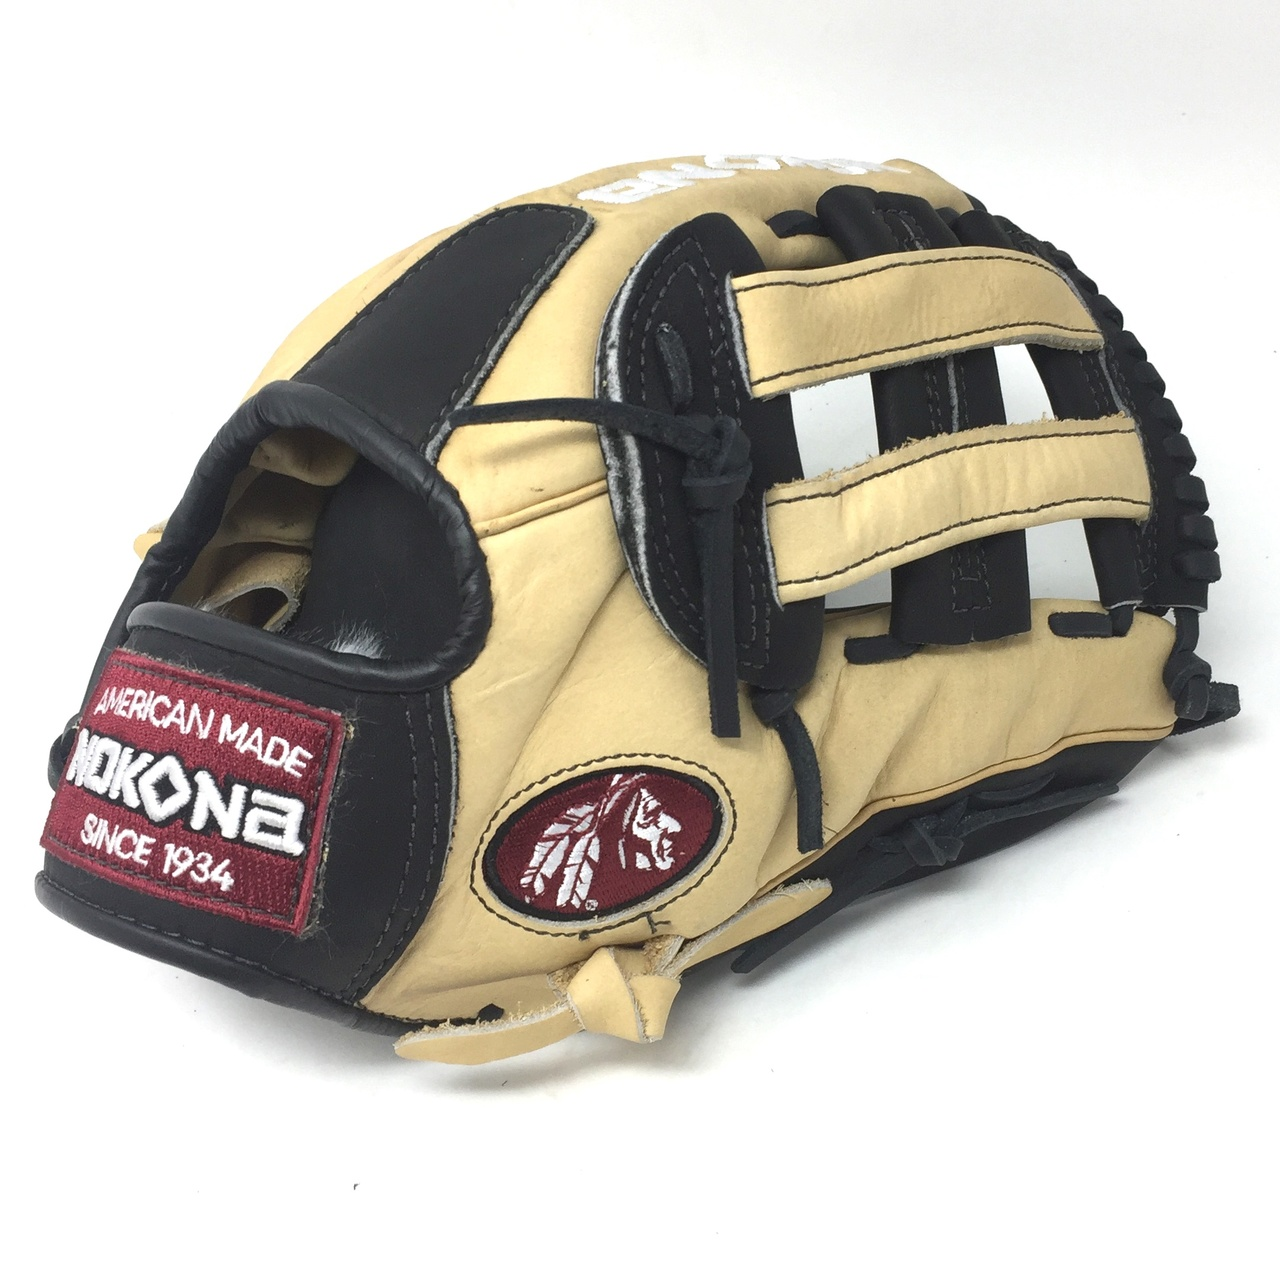 nokona-12-inch-bison-black-alpha-baseball-glove-s-1200hb-right-hand-throw S-1200HB-RightHandThrow  808808893301 Young Adult Glove made of American Bison and Supersoft Steerhide leather